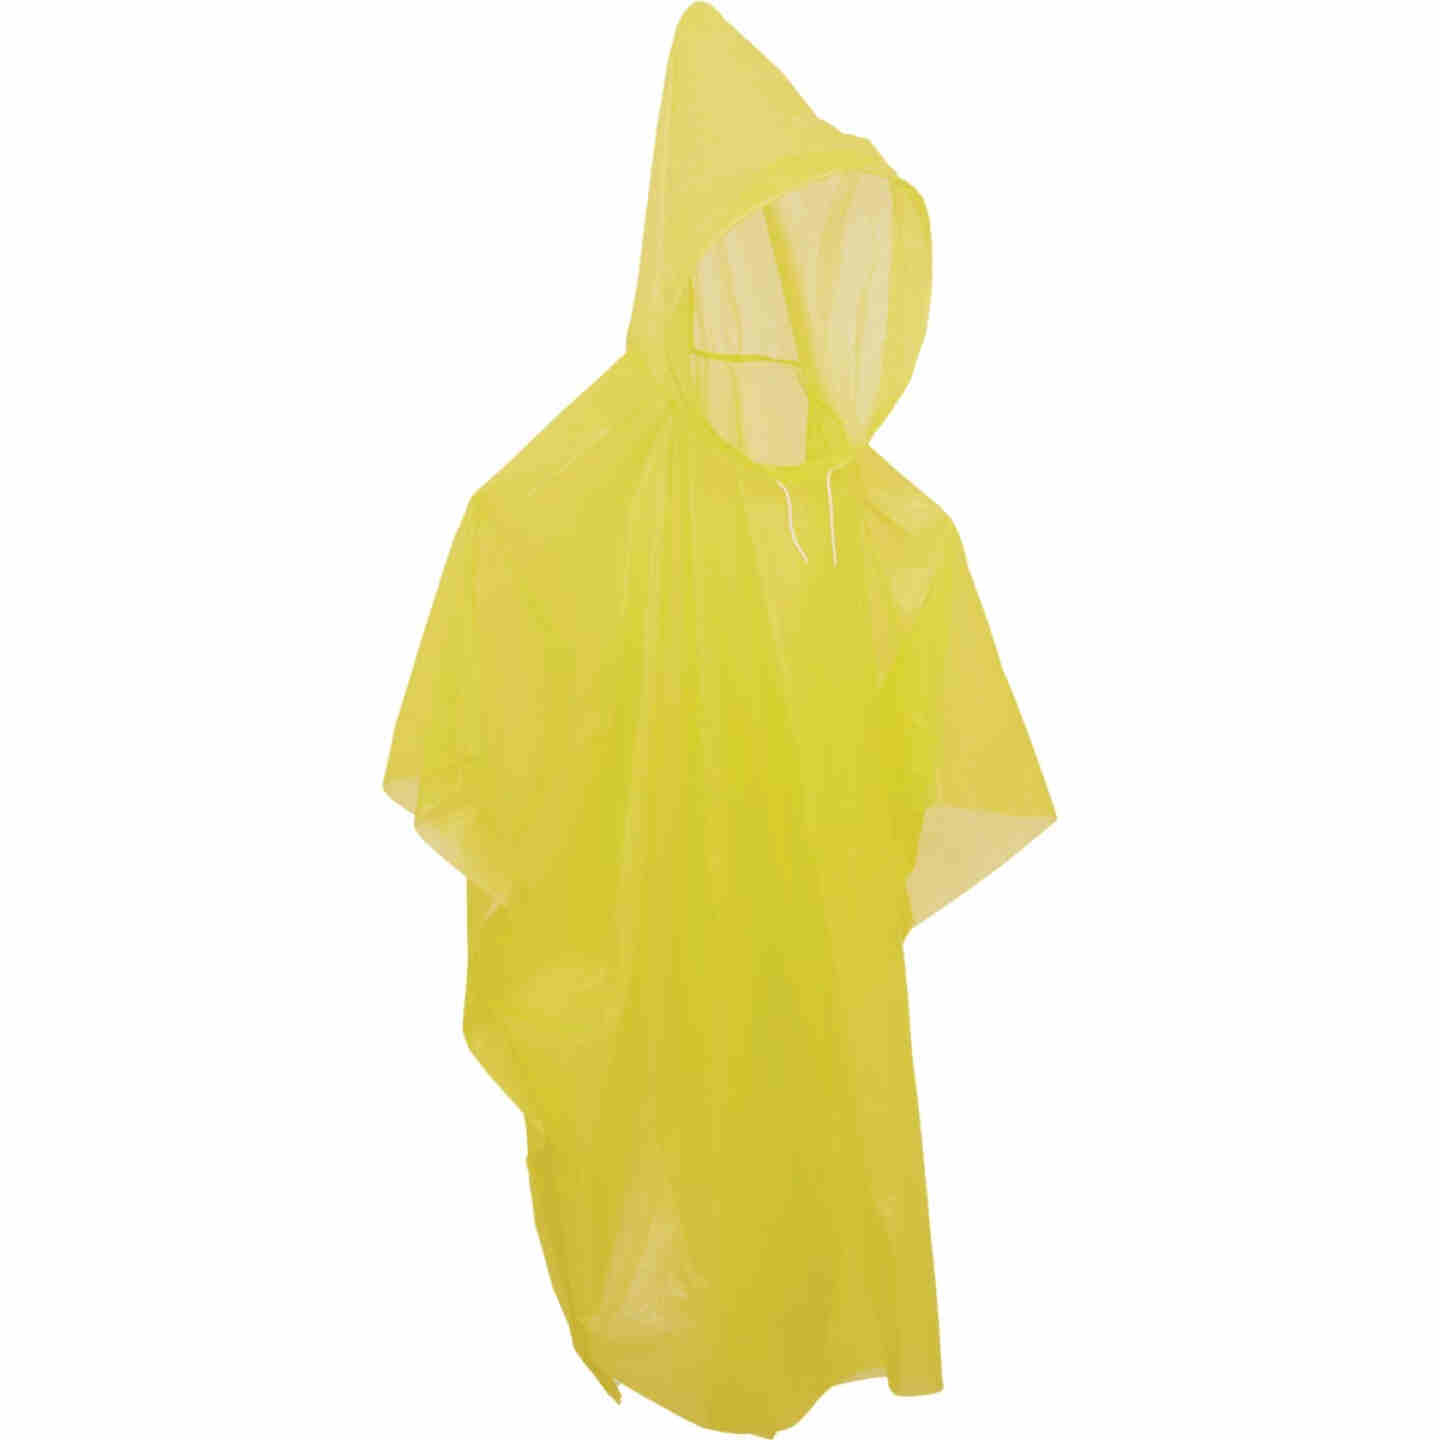 Smart Savers 52 In. x 40 In. Yellow Lightweight Rain Poncho Image 2